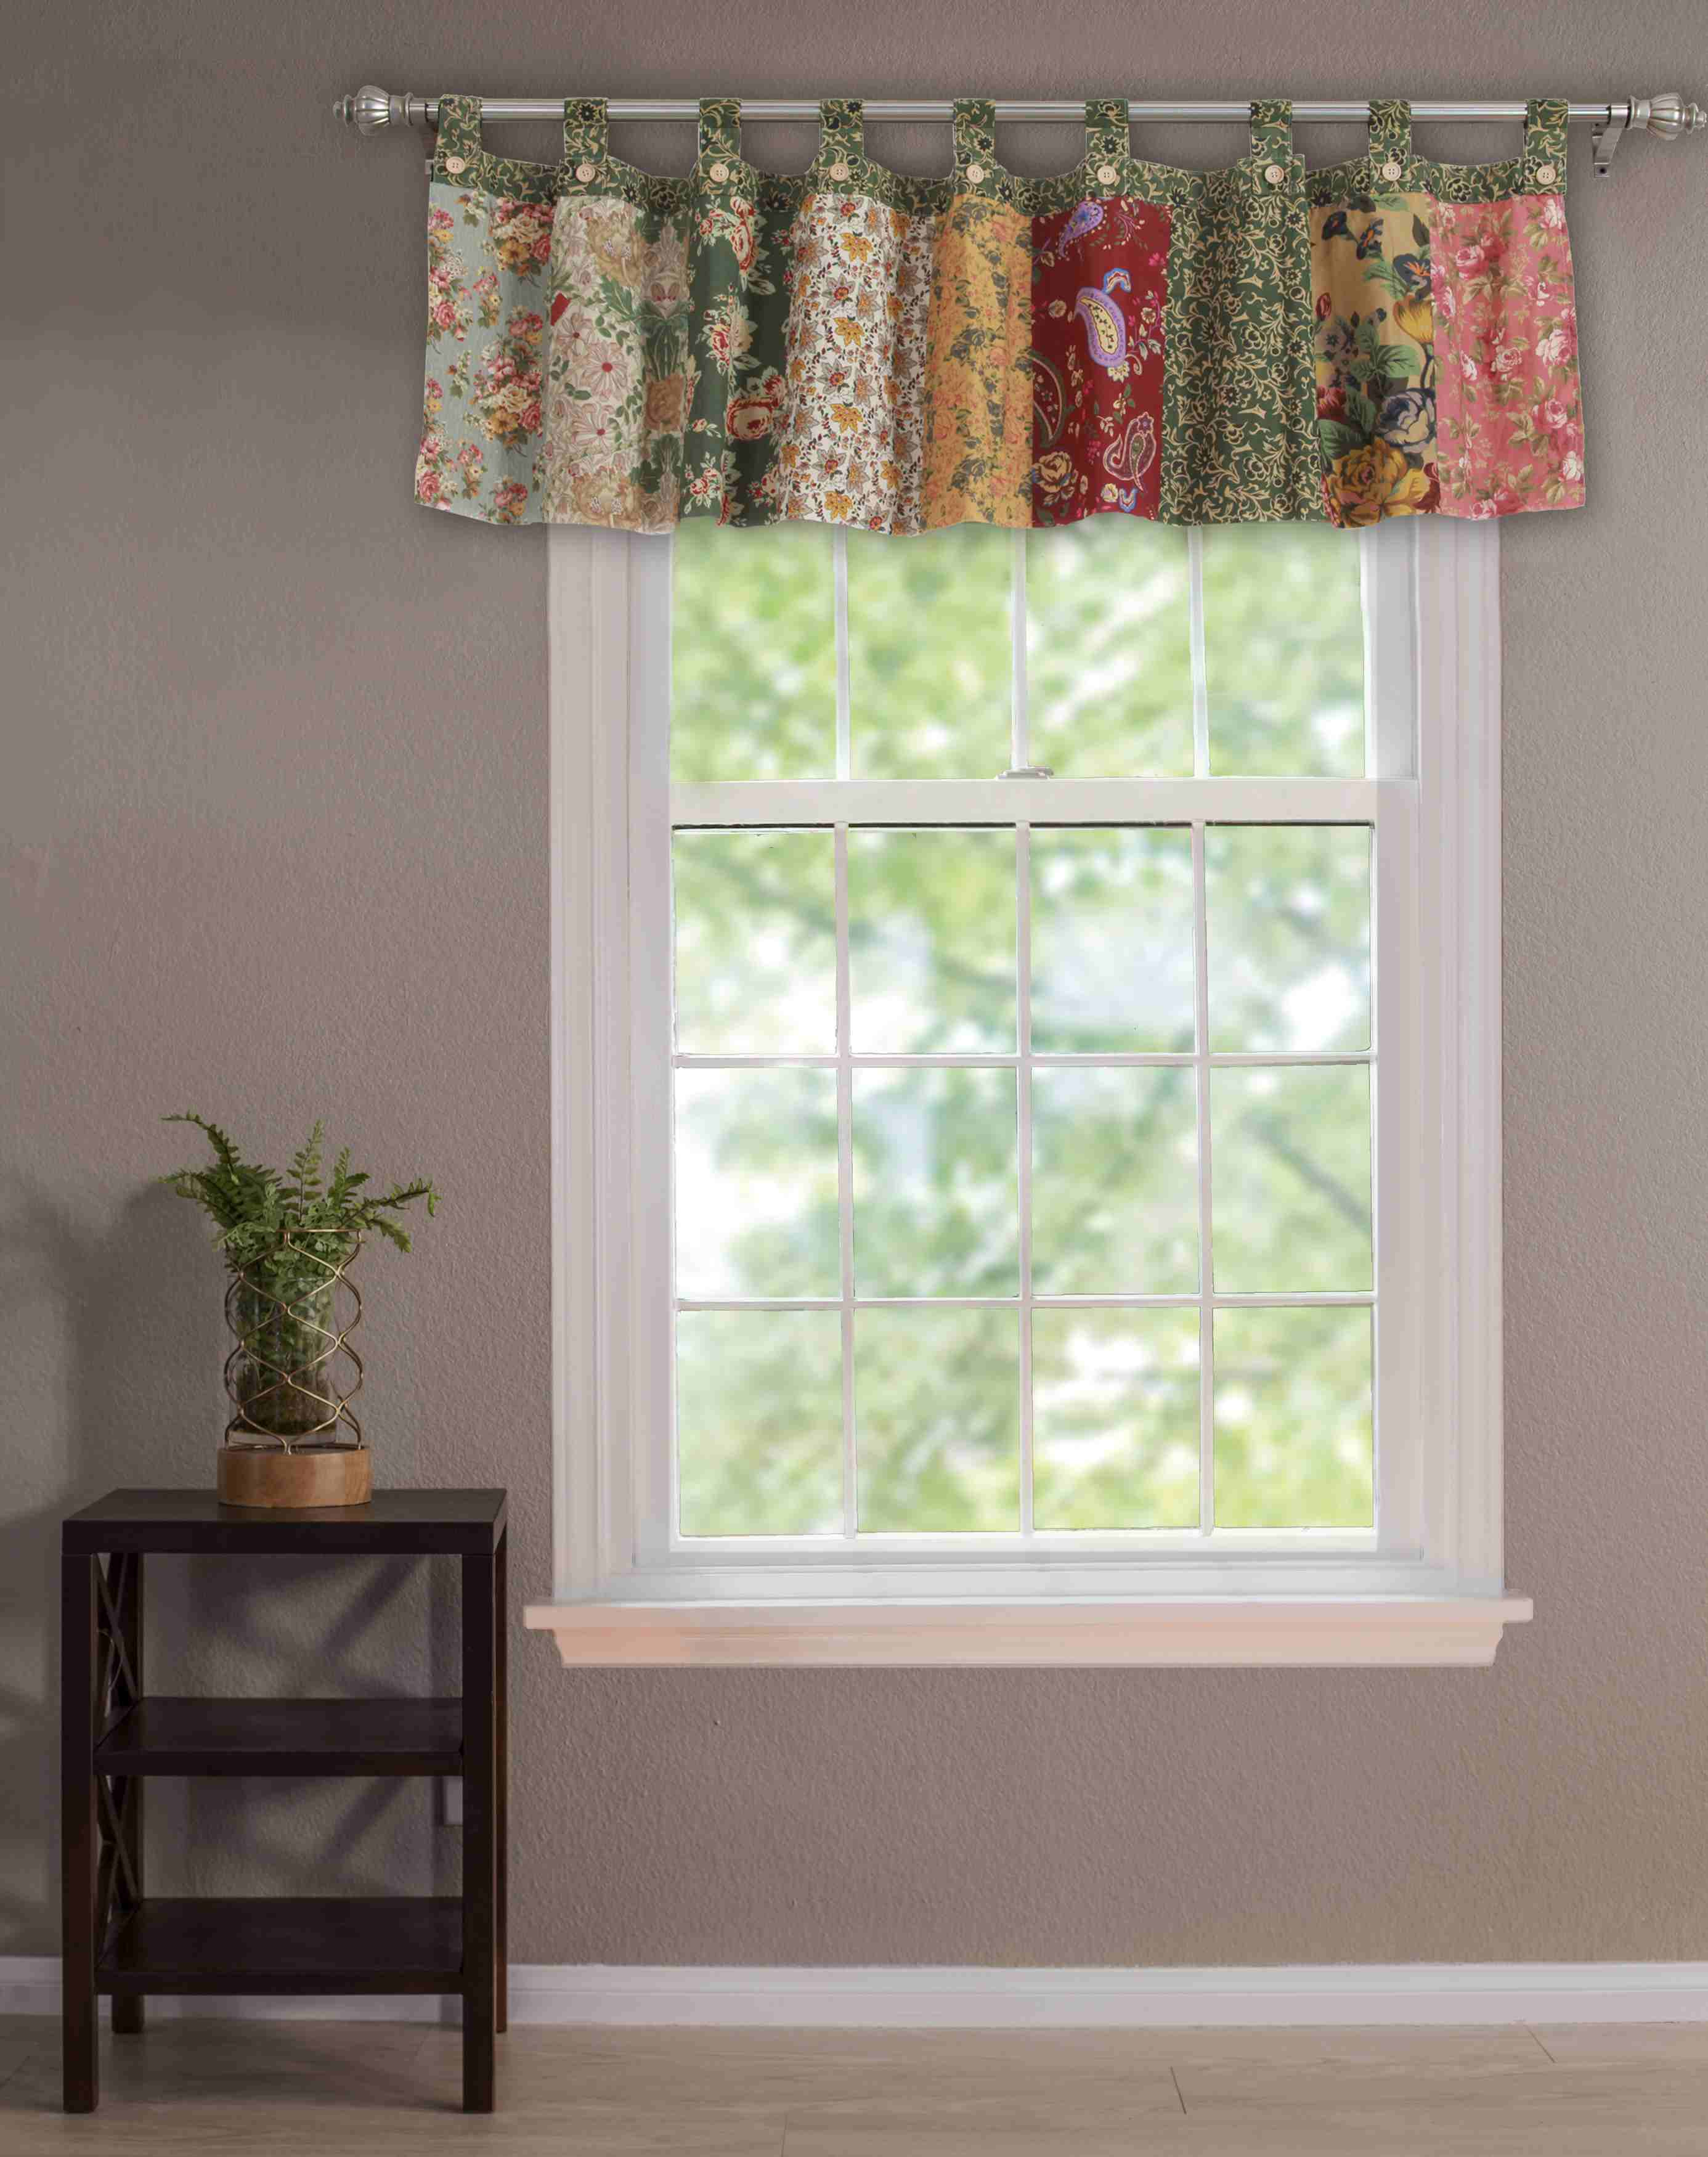 Antique Chic Multi Window Valance